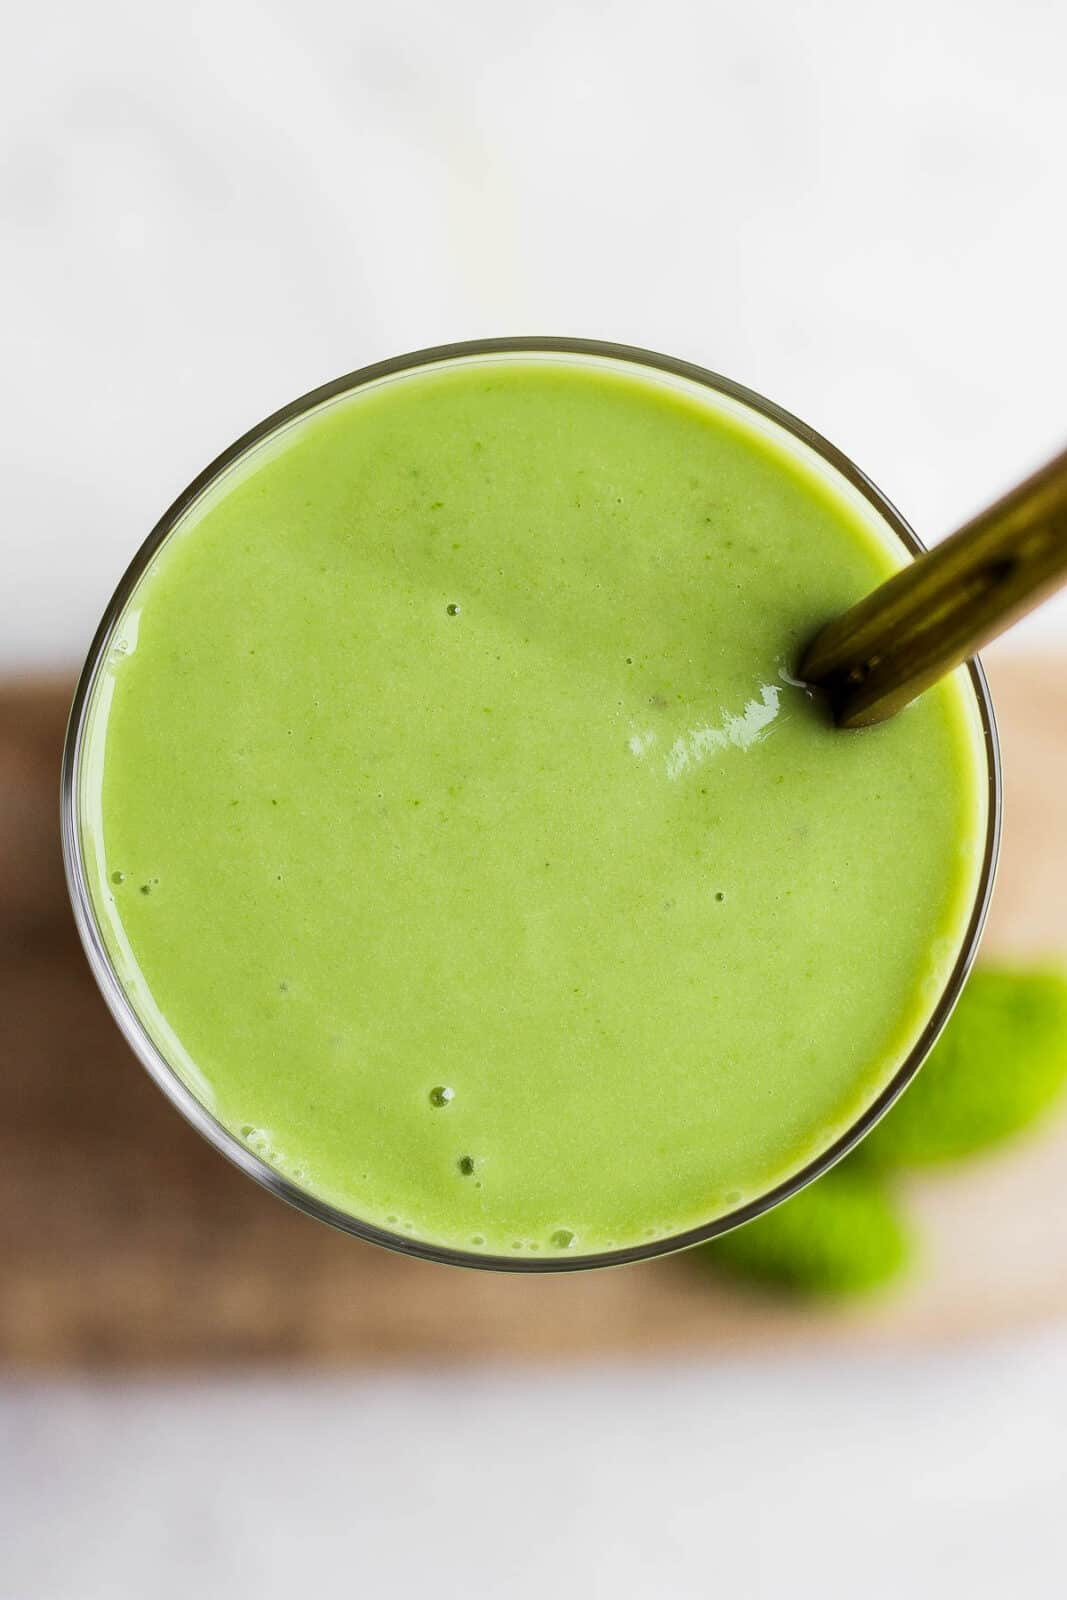 Top view of a green smoothie in a glass.